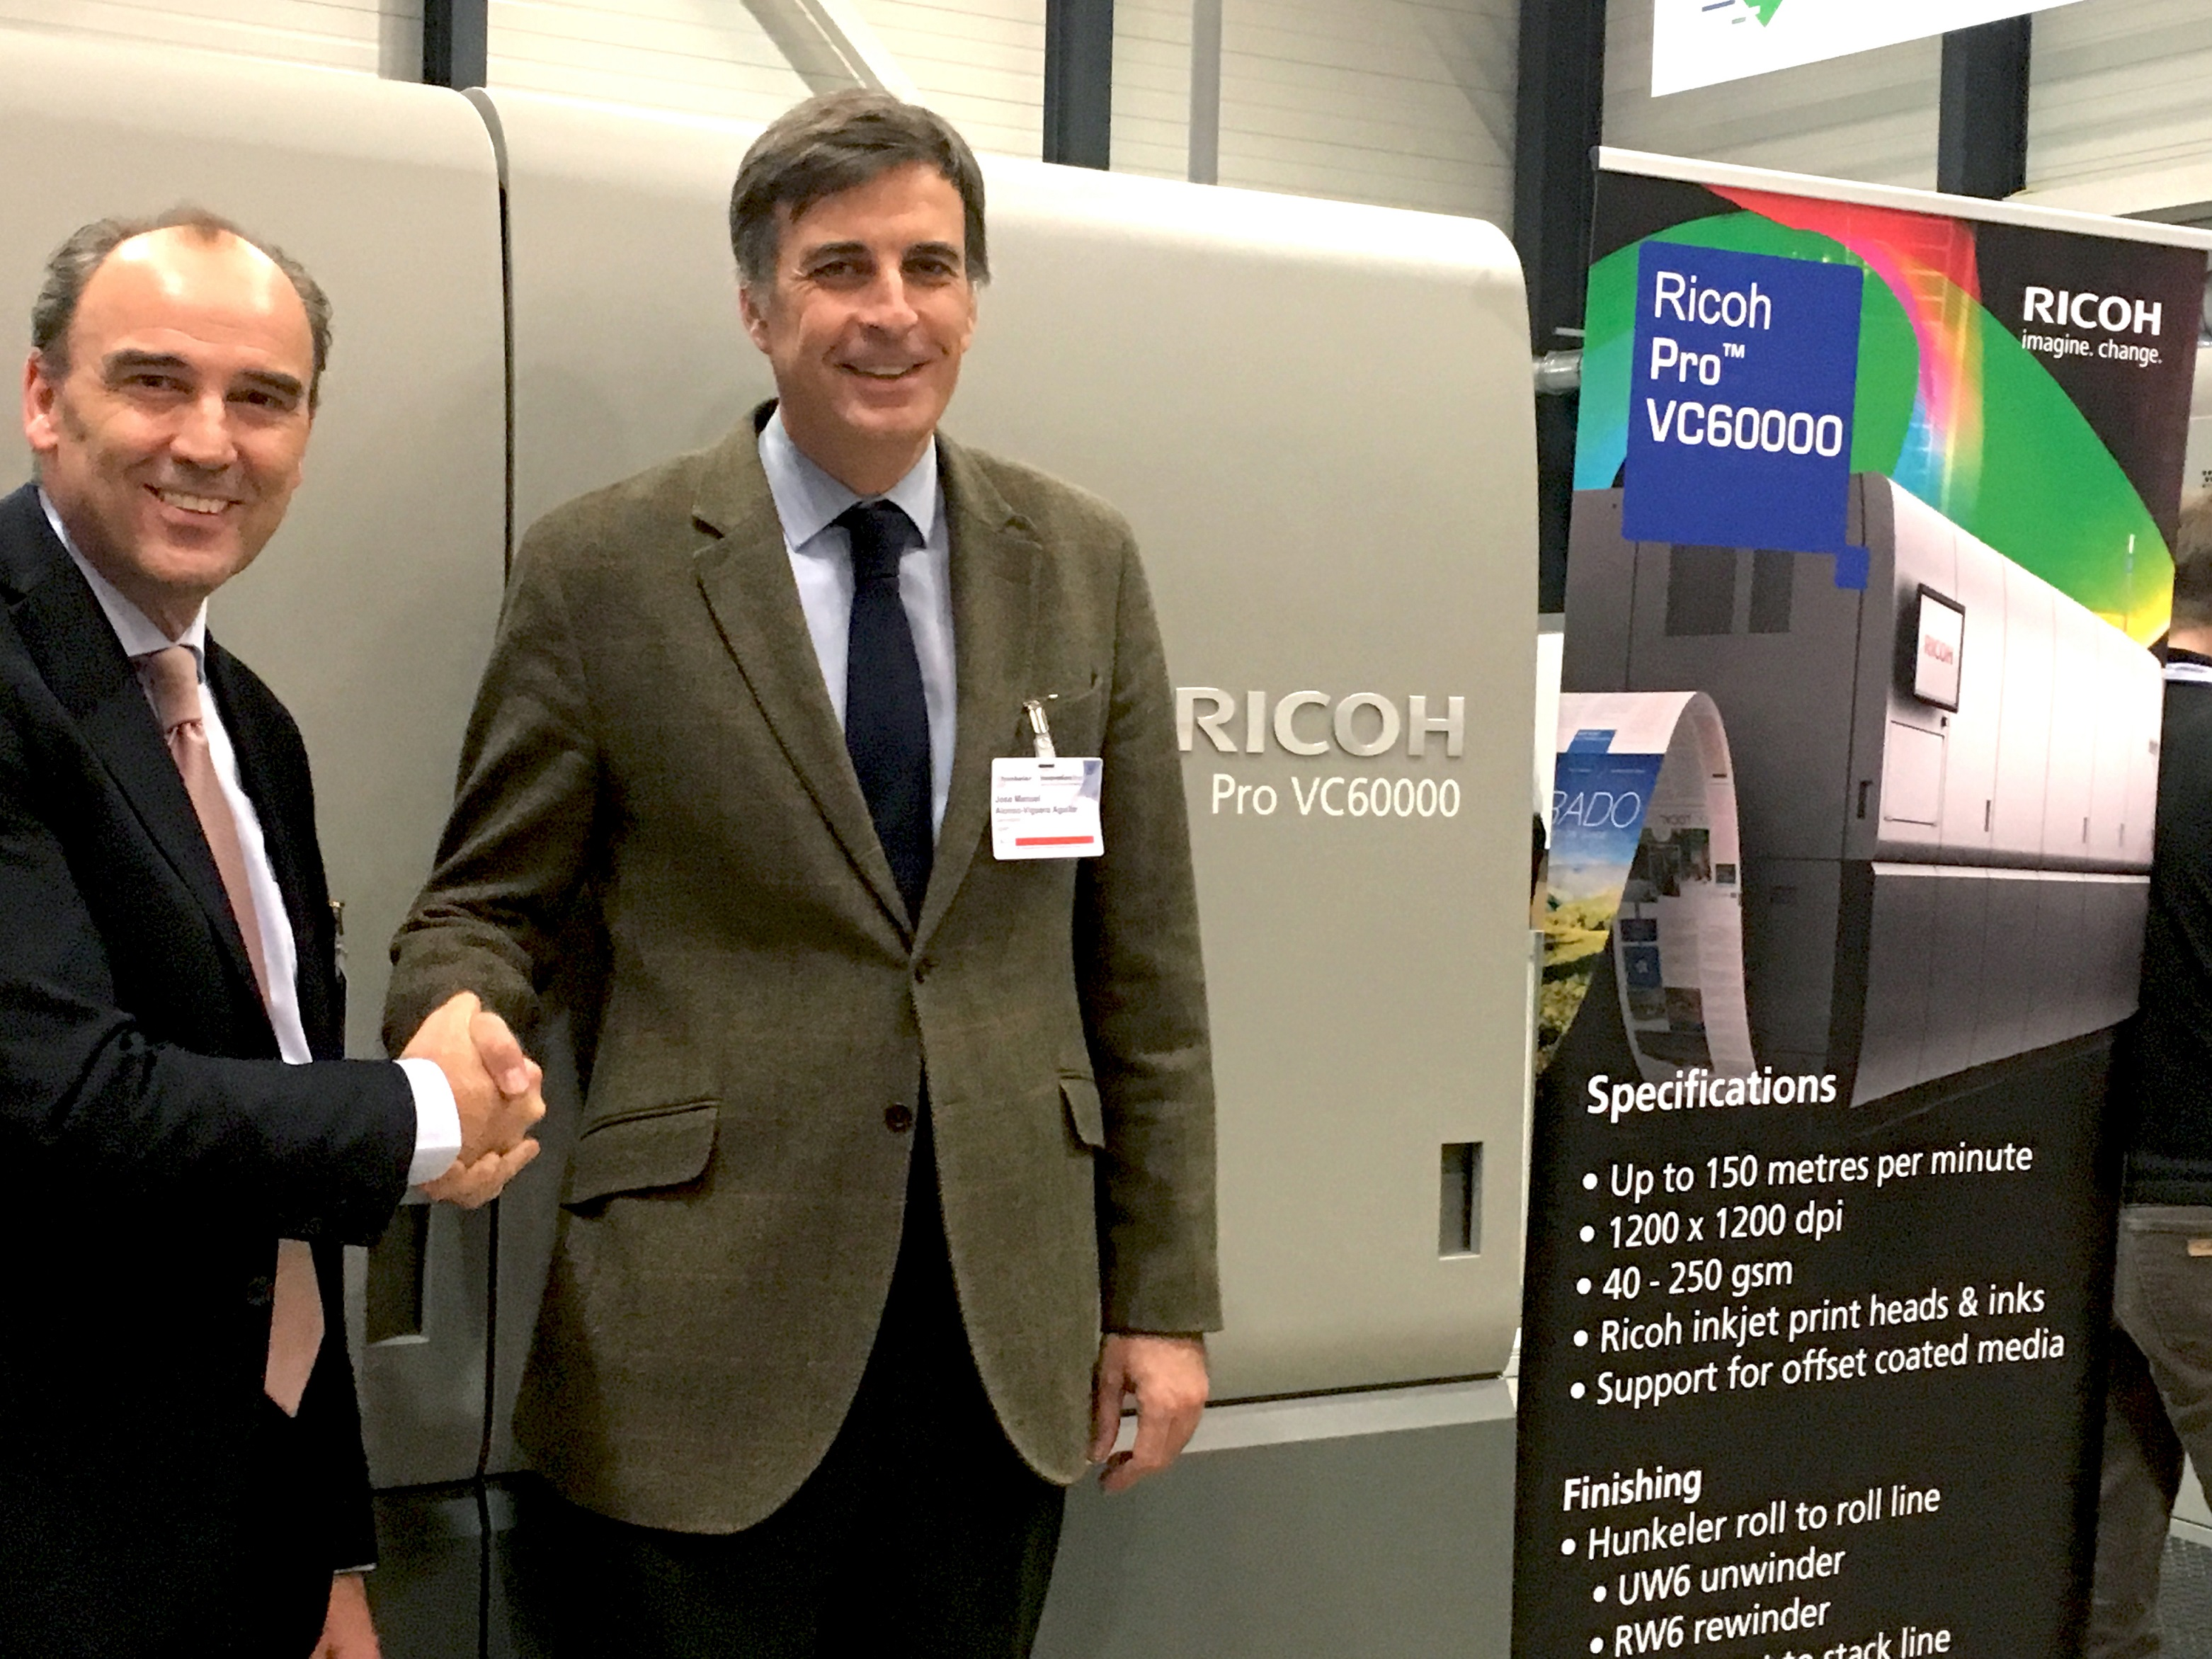 Servinform chooses Ricoh Pro VC60000 to reach new markets.